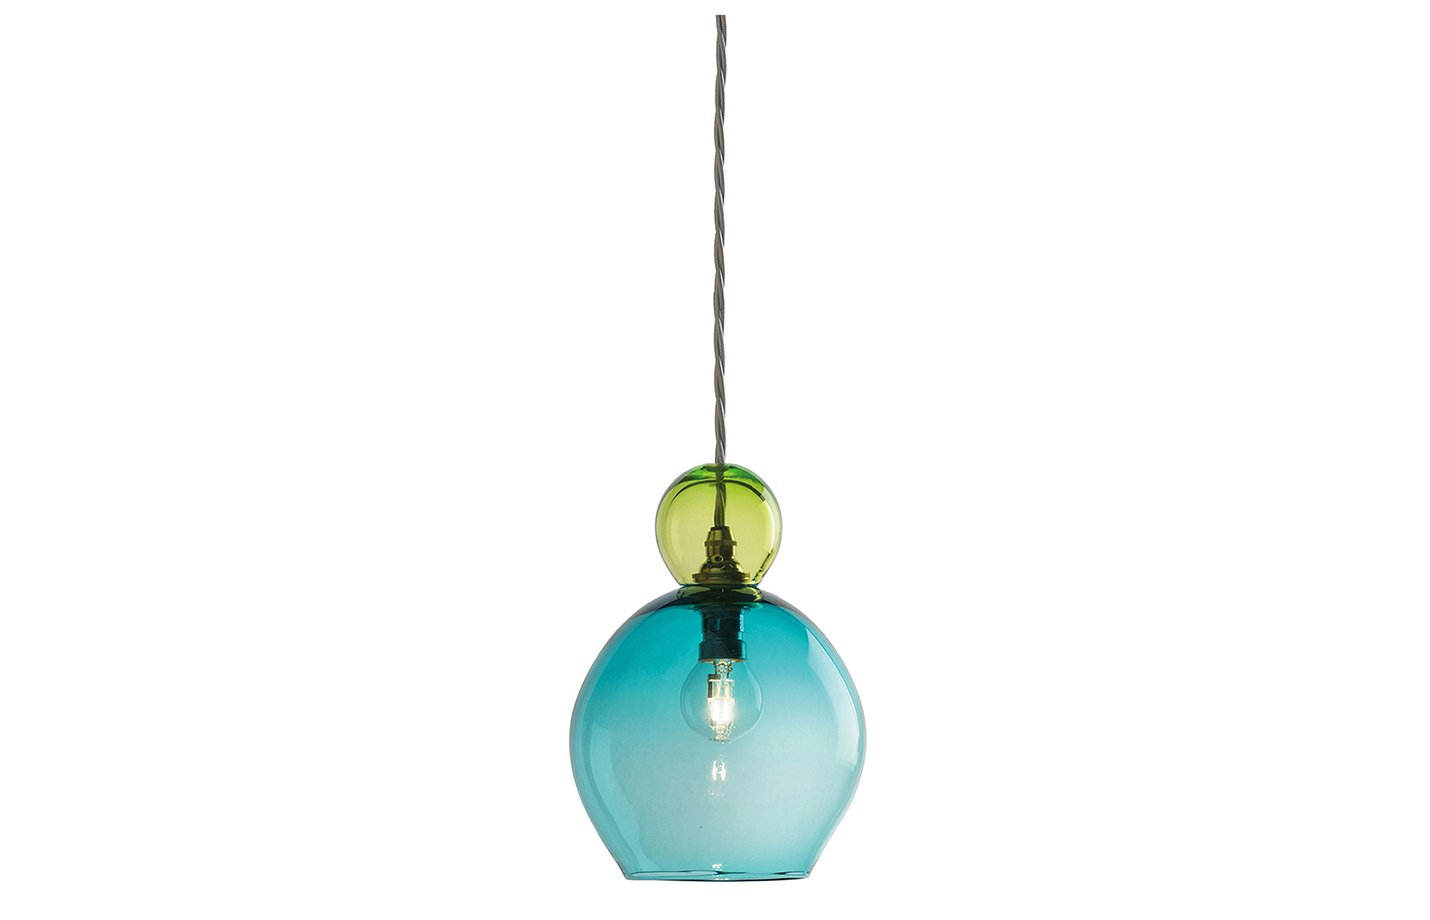 Oshka pendant lamp – small -blue-green